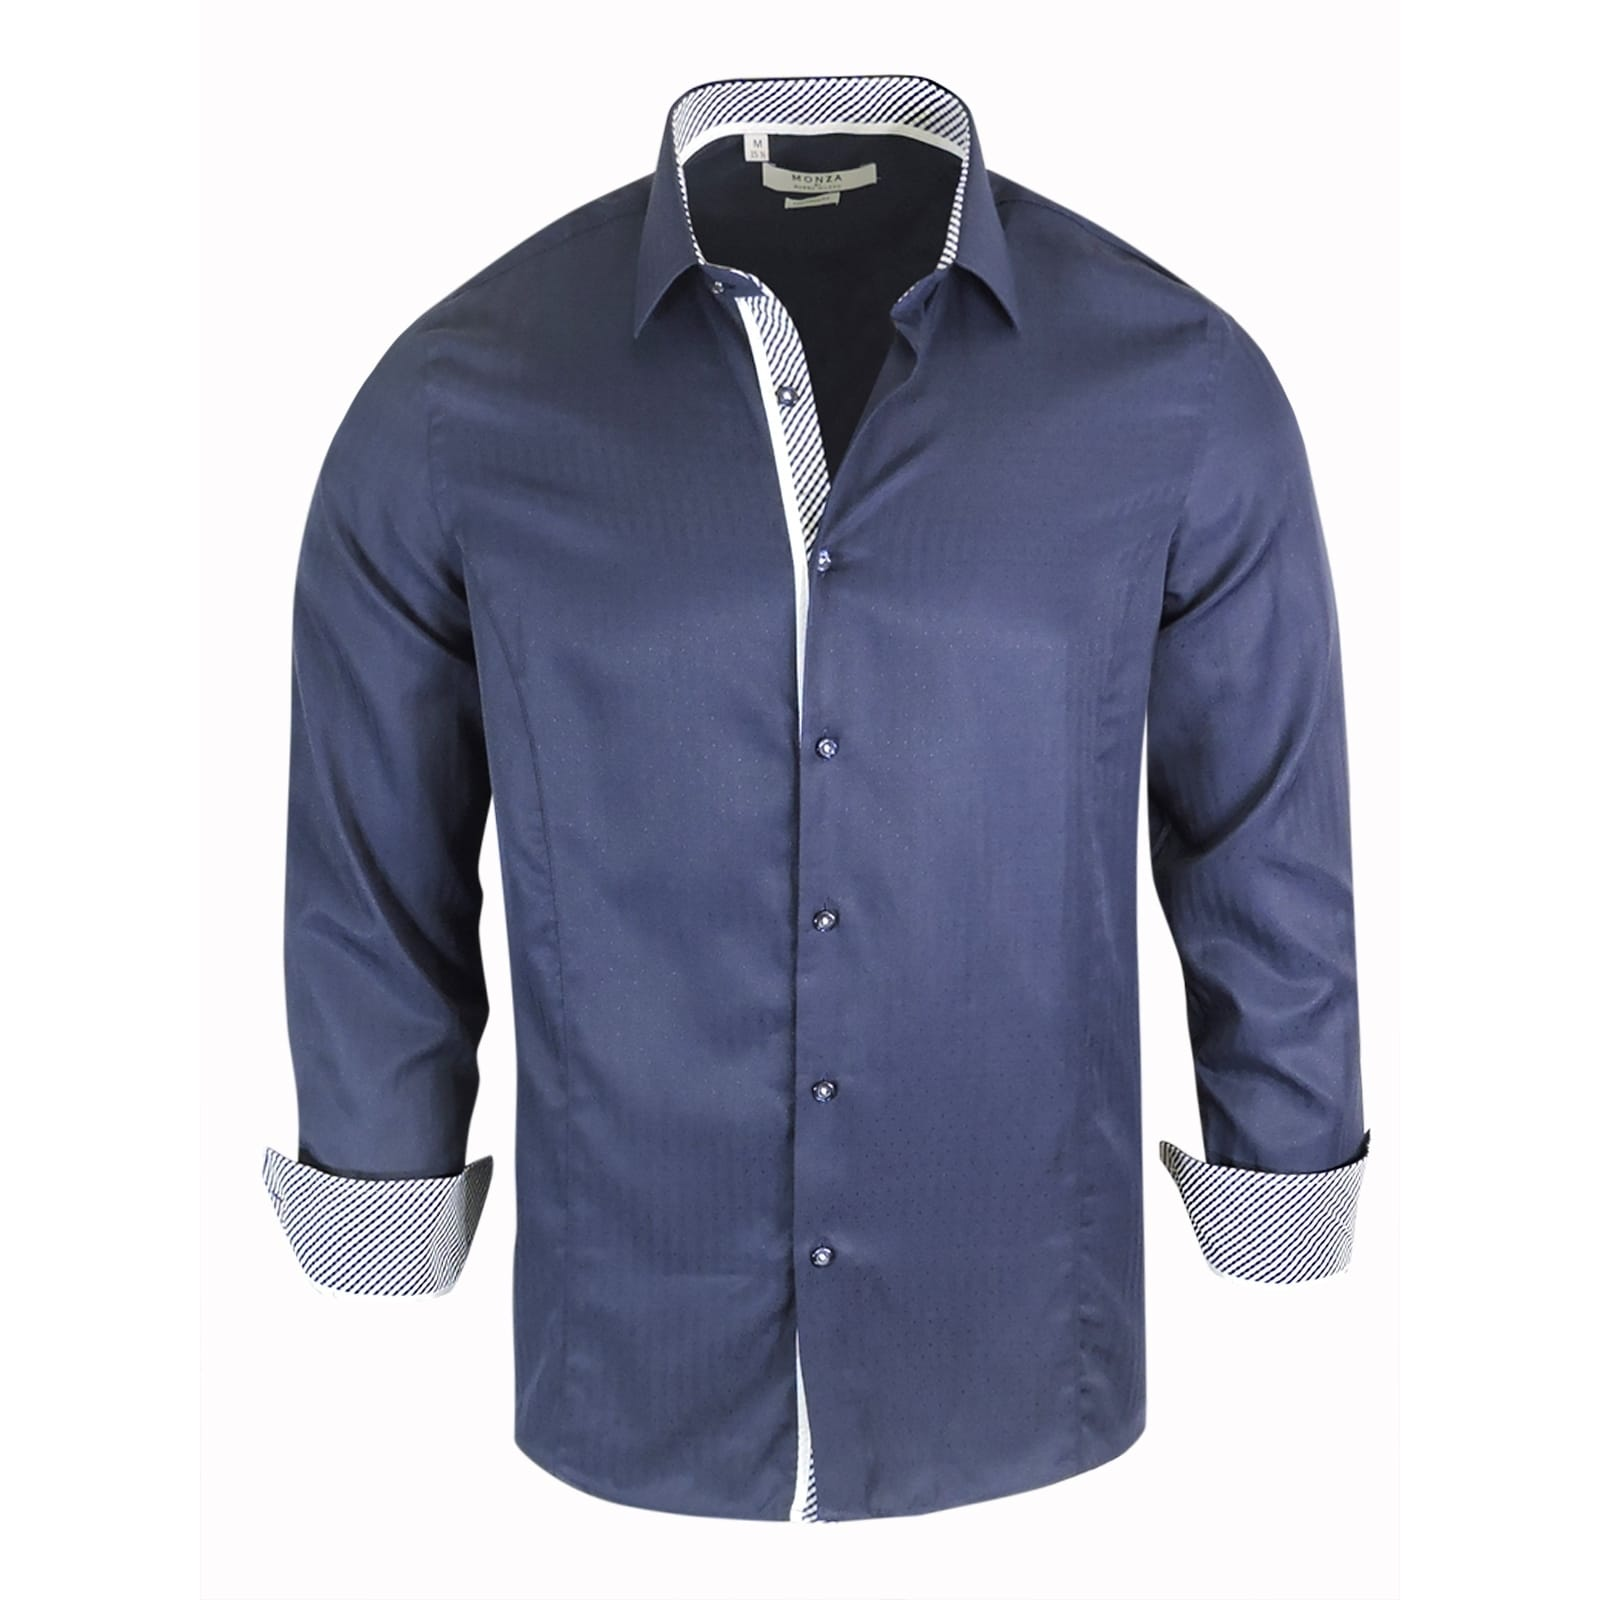 Shop Monza Tailored Fit Navy Dress Shirt Free Shipping On Orders